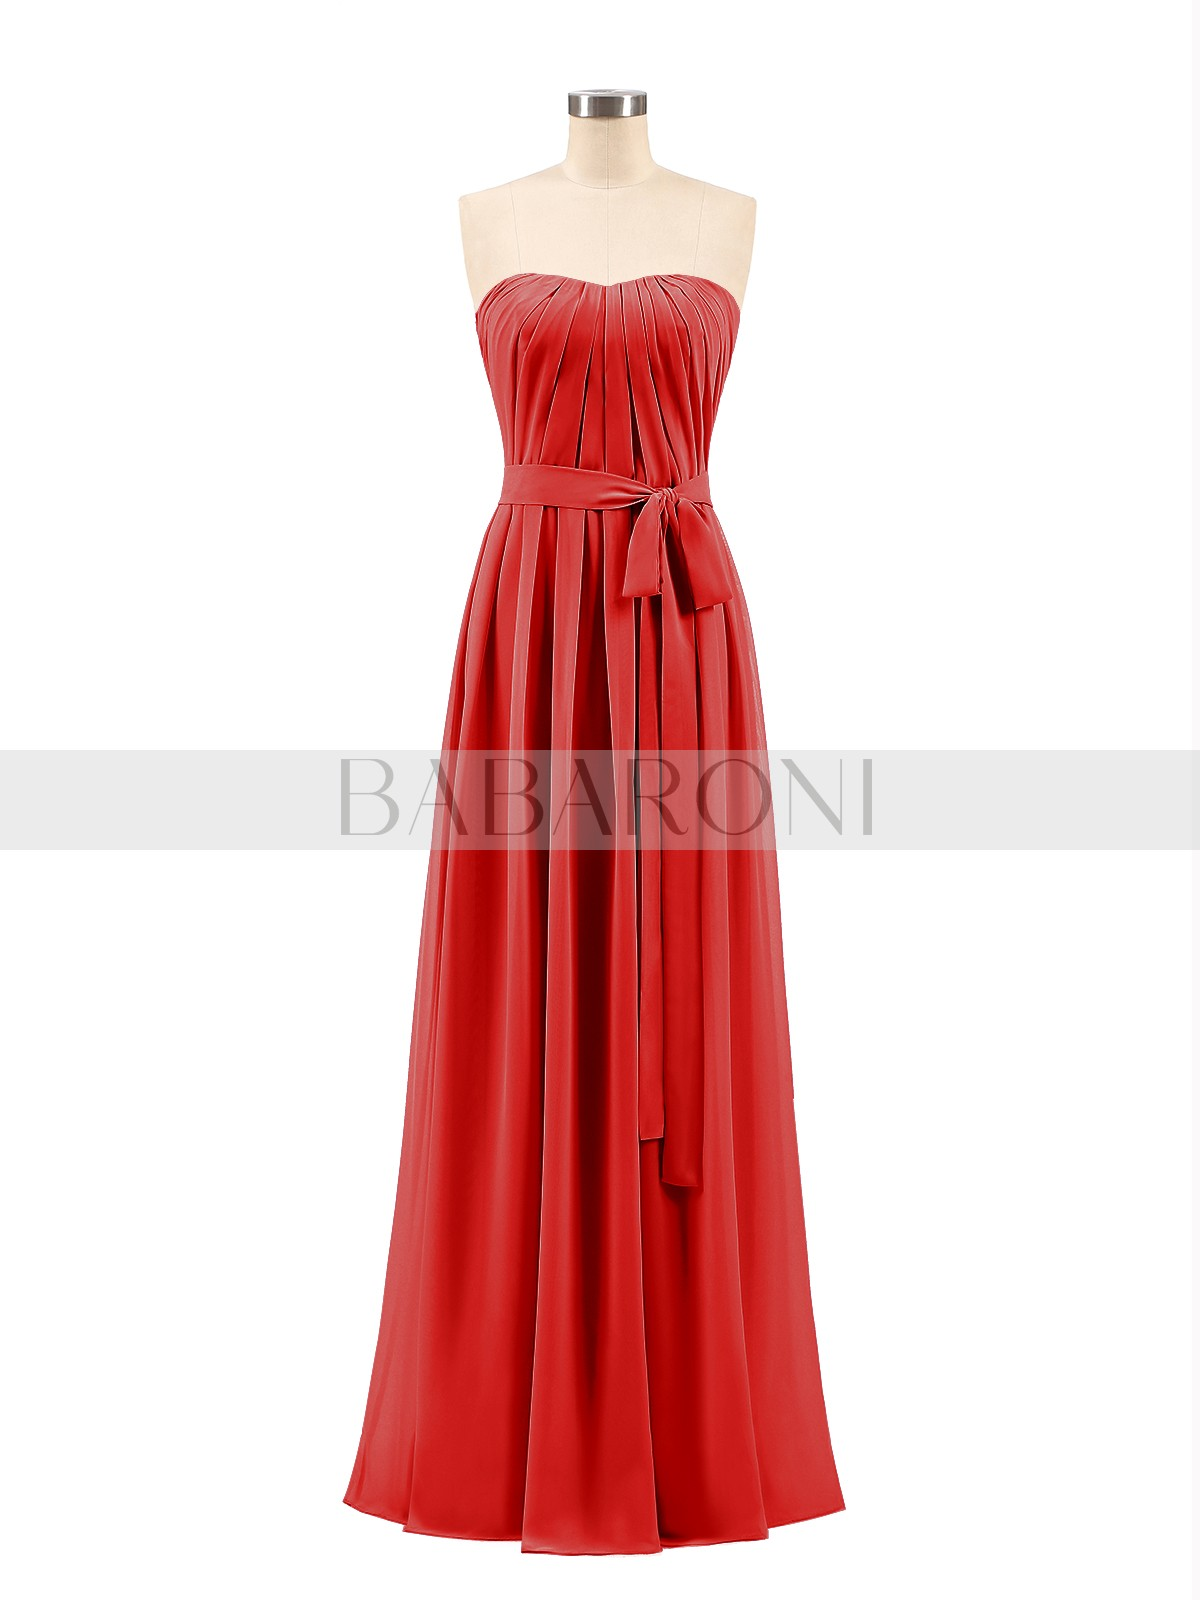 79c9197cda18 A-line Chiffon Mulberry Zipper Bow, Ruched Floor-length Strapless  Sleeveless Bridesmaid Dresses. Loading zoom